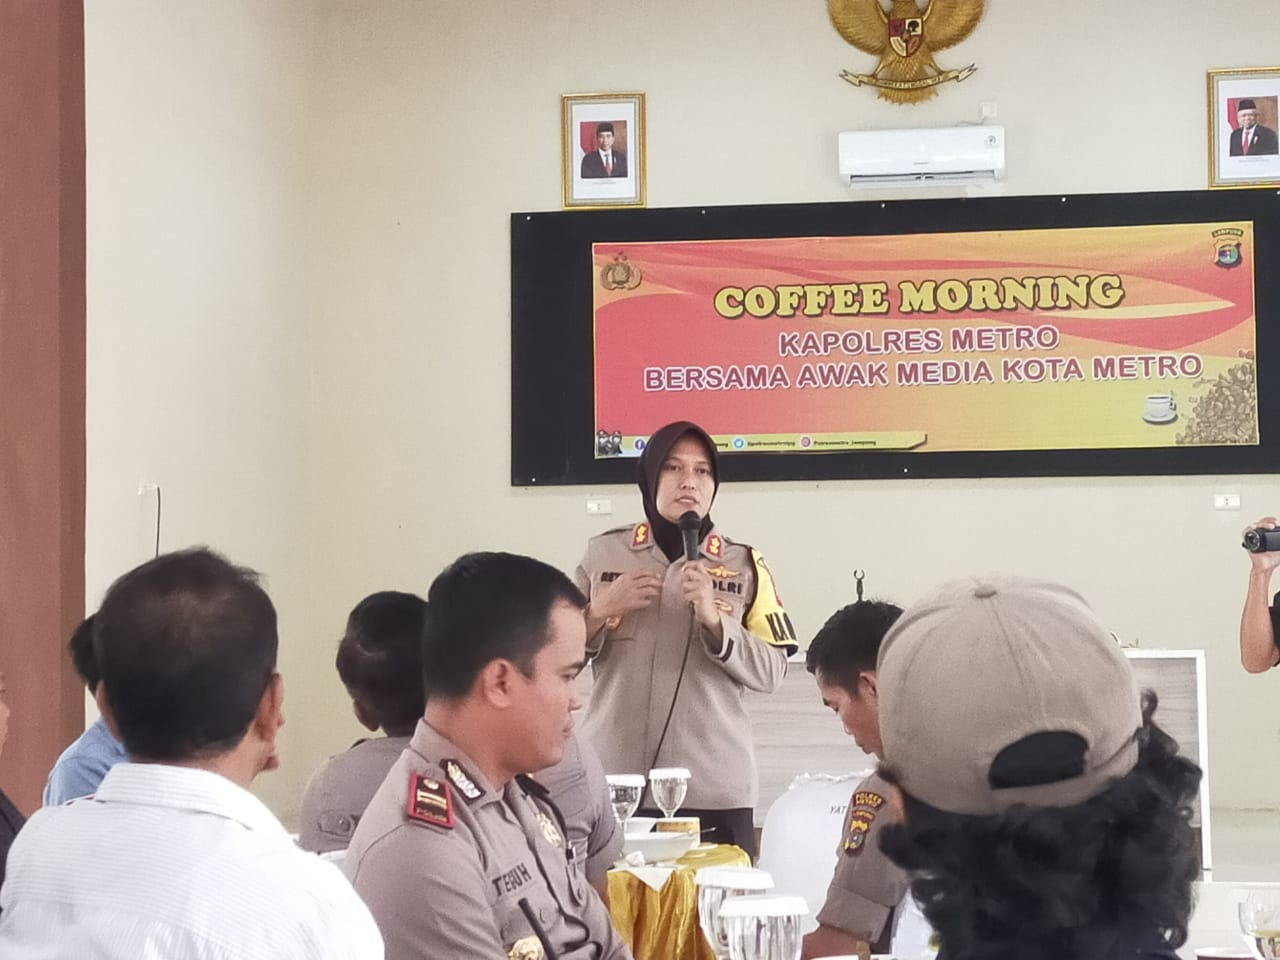 Polres Metro Gelar Coffe Morning Dengan Awak Media